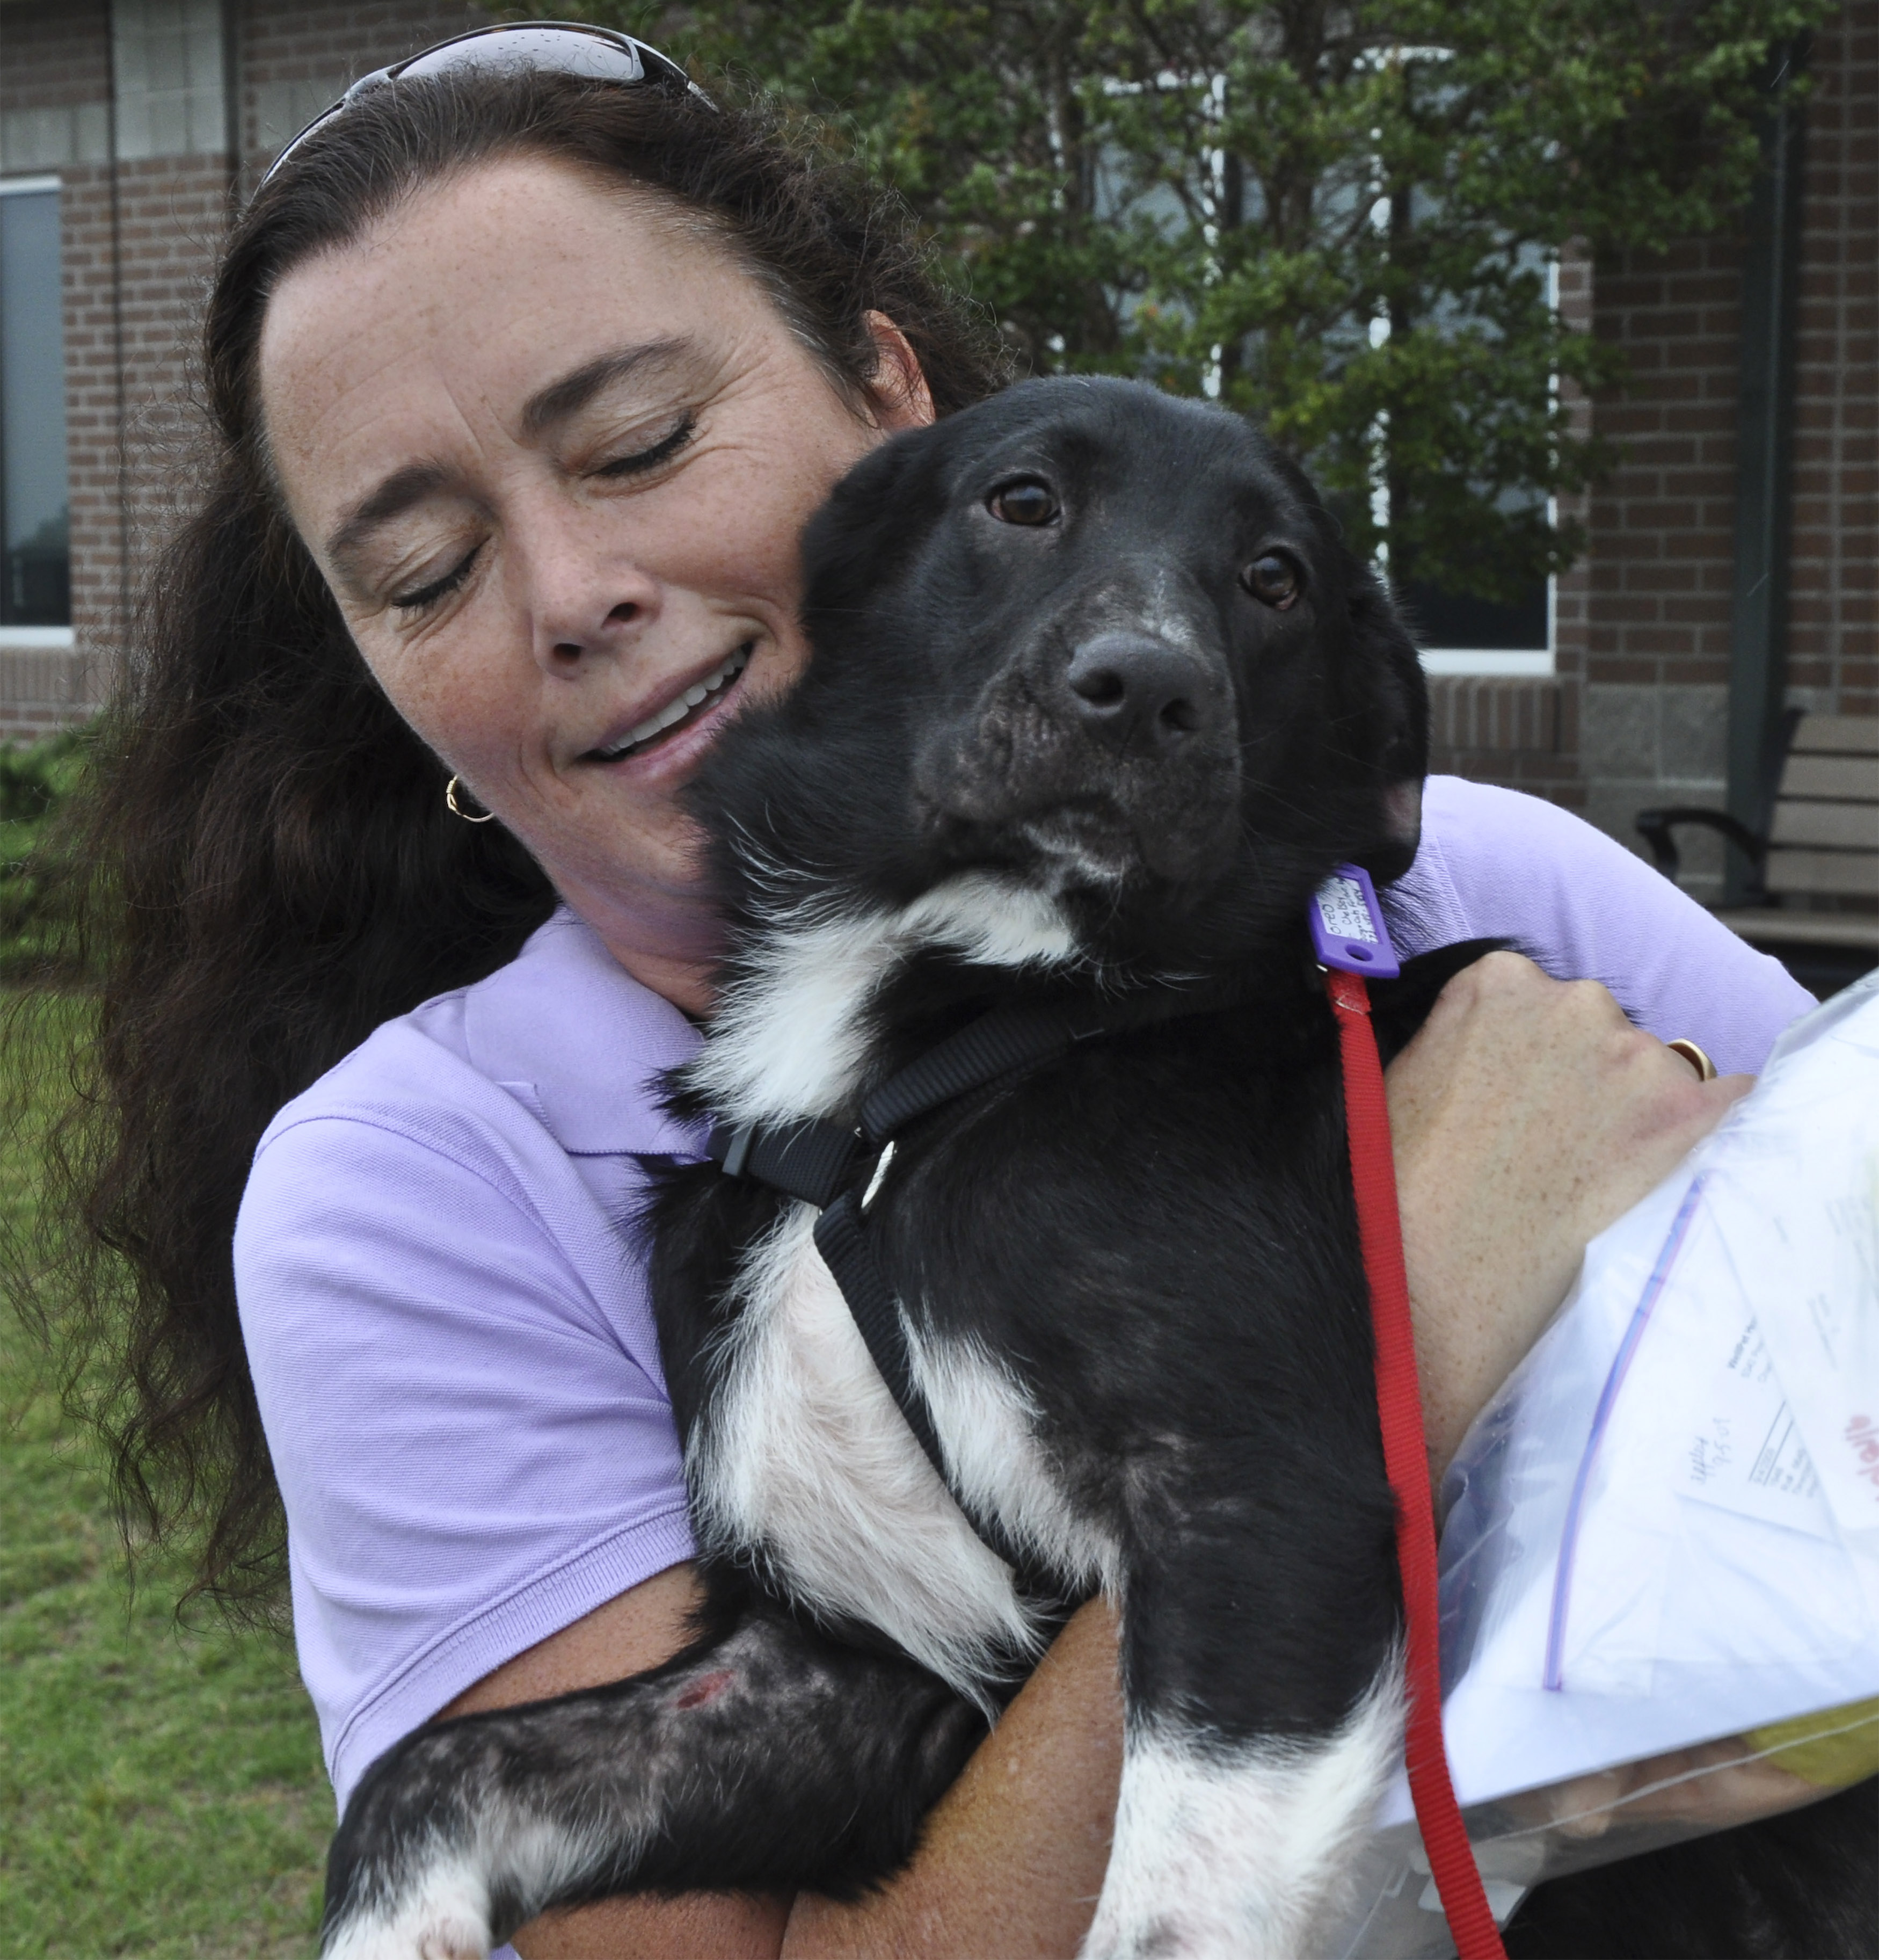 Oreo, a six-month-old female border collie, gets a last hug from her foster human Sabrina Sweeney-Garcia, who rescued Oreo from a north Georgia facility before the animal was to be put to sleep. Pilots N Paws is a volunteer organization that matches pilots and their aircraft with animals in need of new homes. Photo by David Tulis.